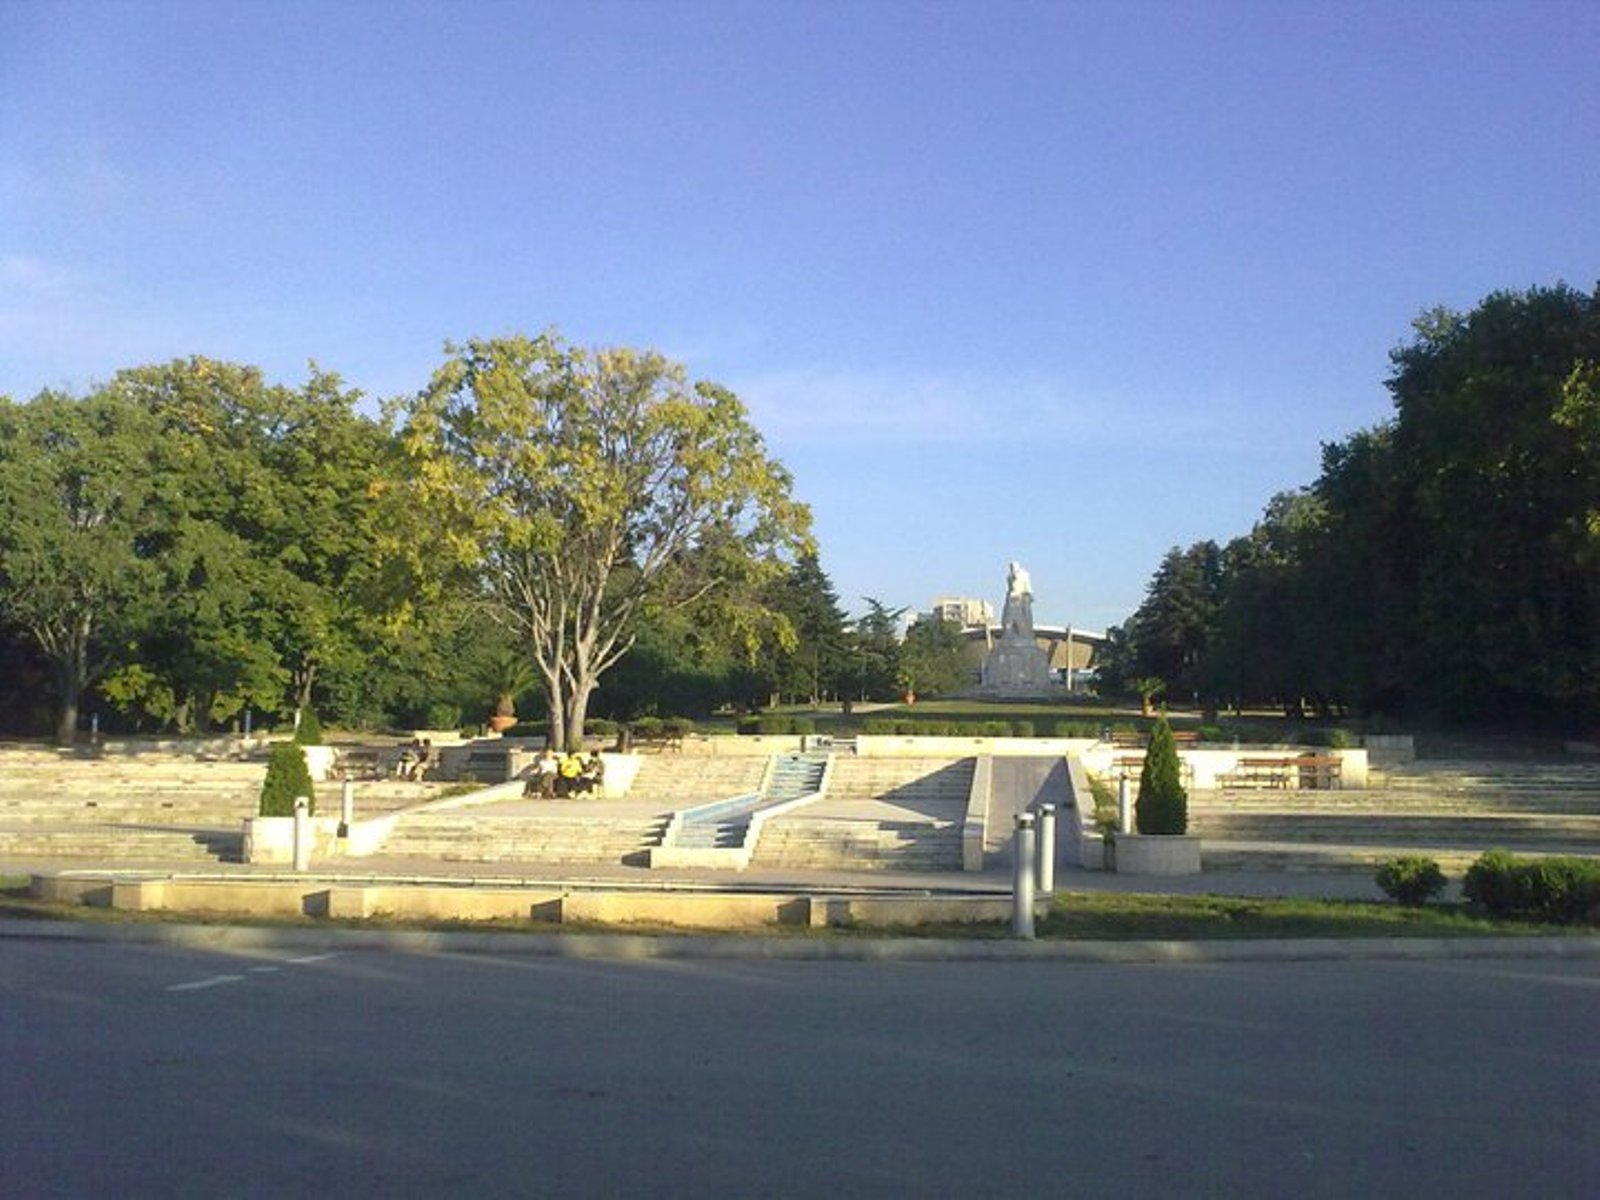 Varna - Attraction Sea garden Varna - Picture 4